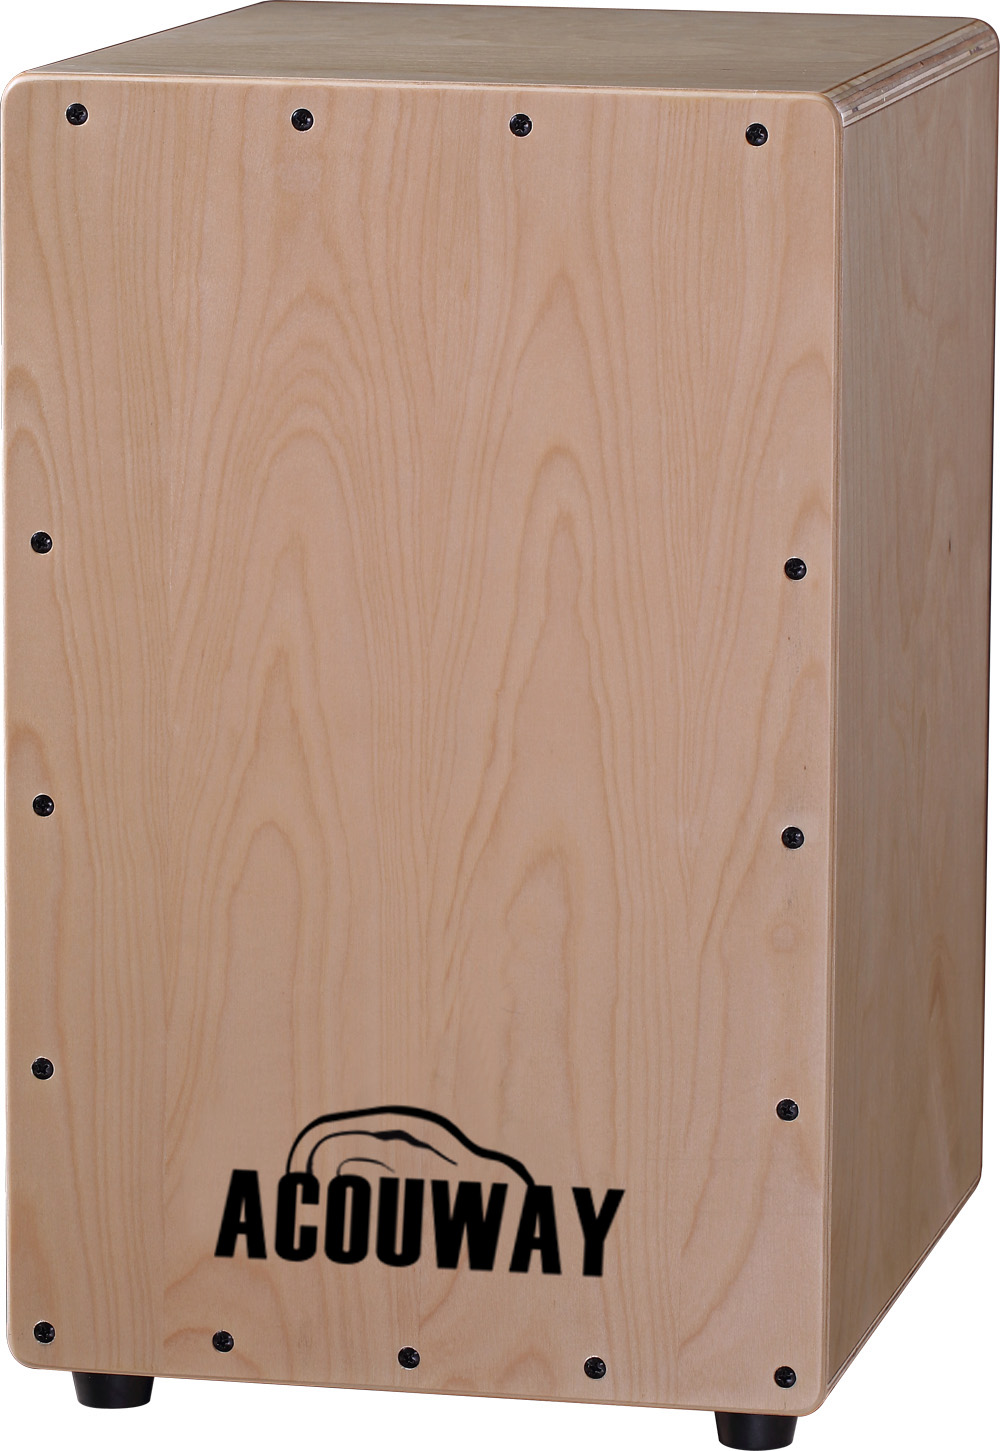 Acoustic cajon drum street percussion flamenco drum cajon also good sitting wooden Stool chair